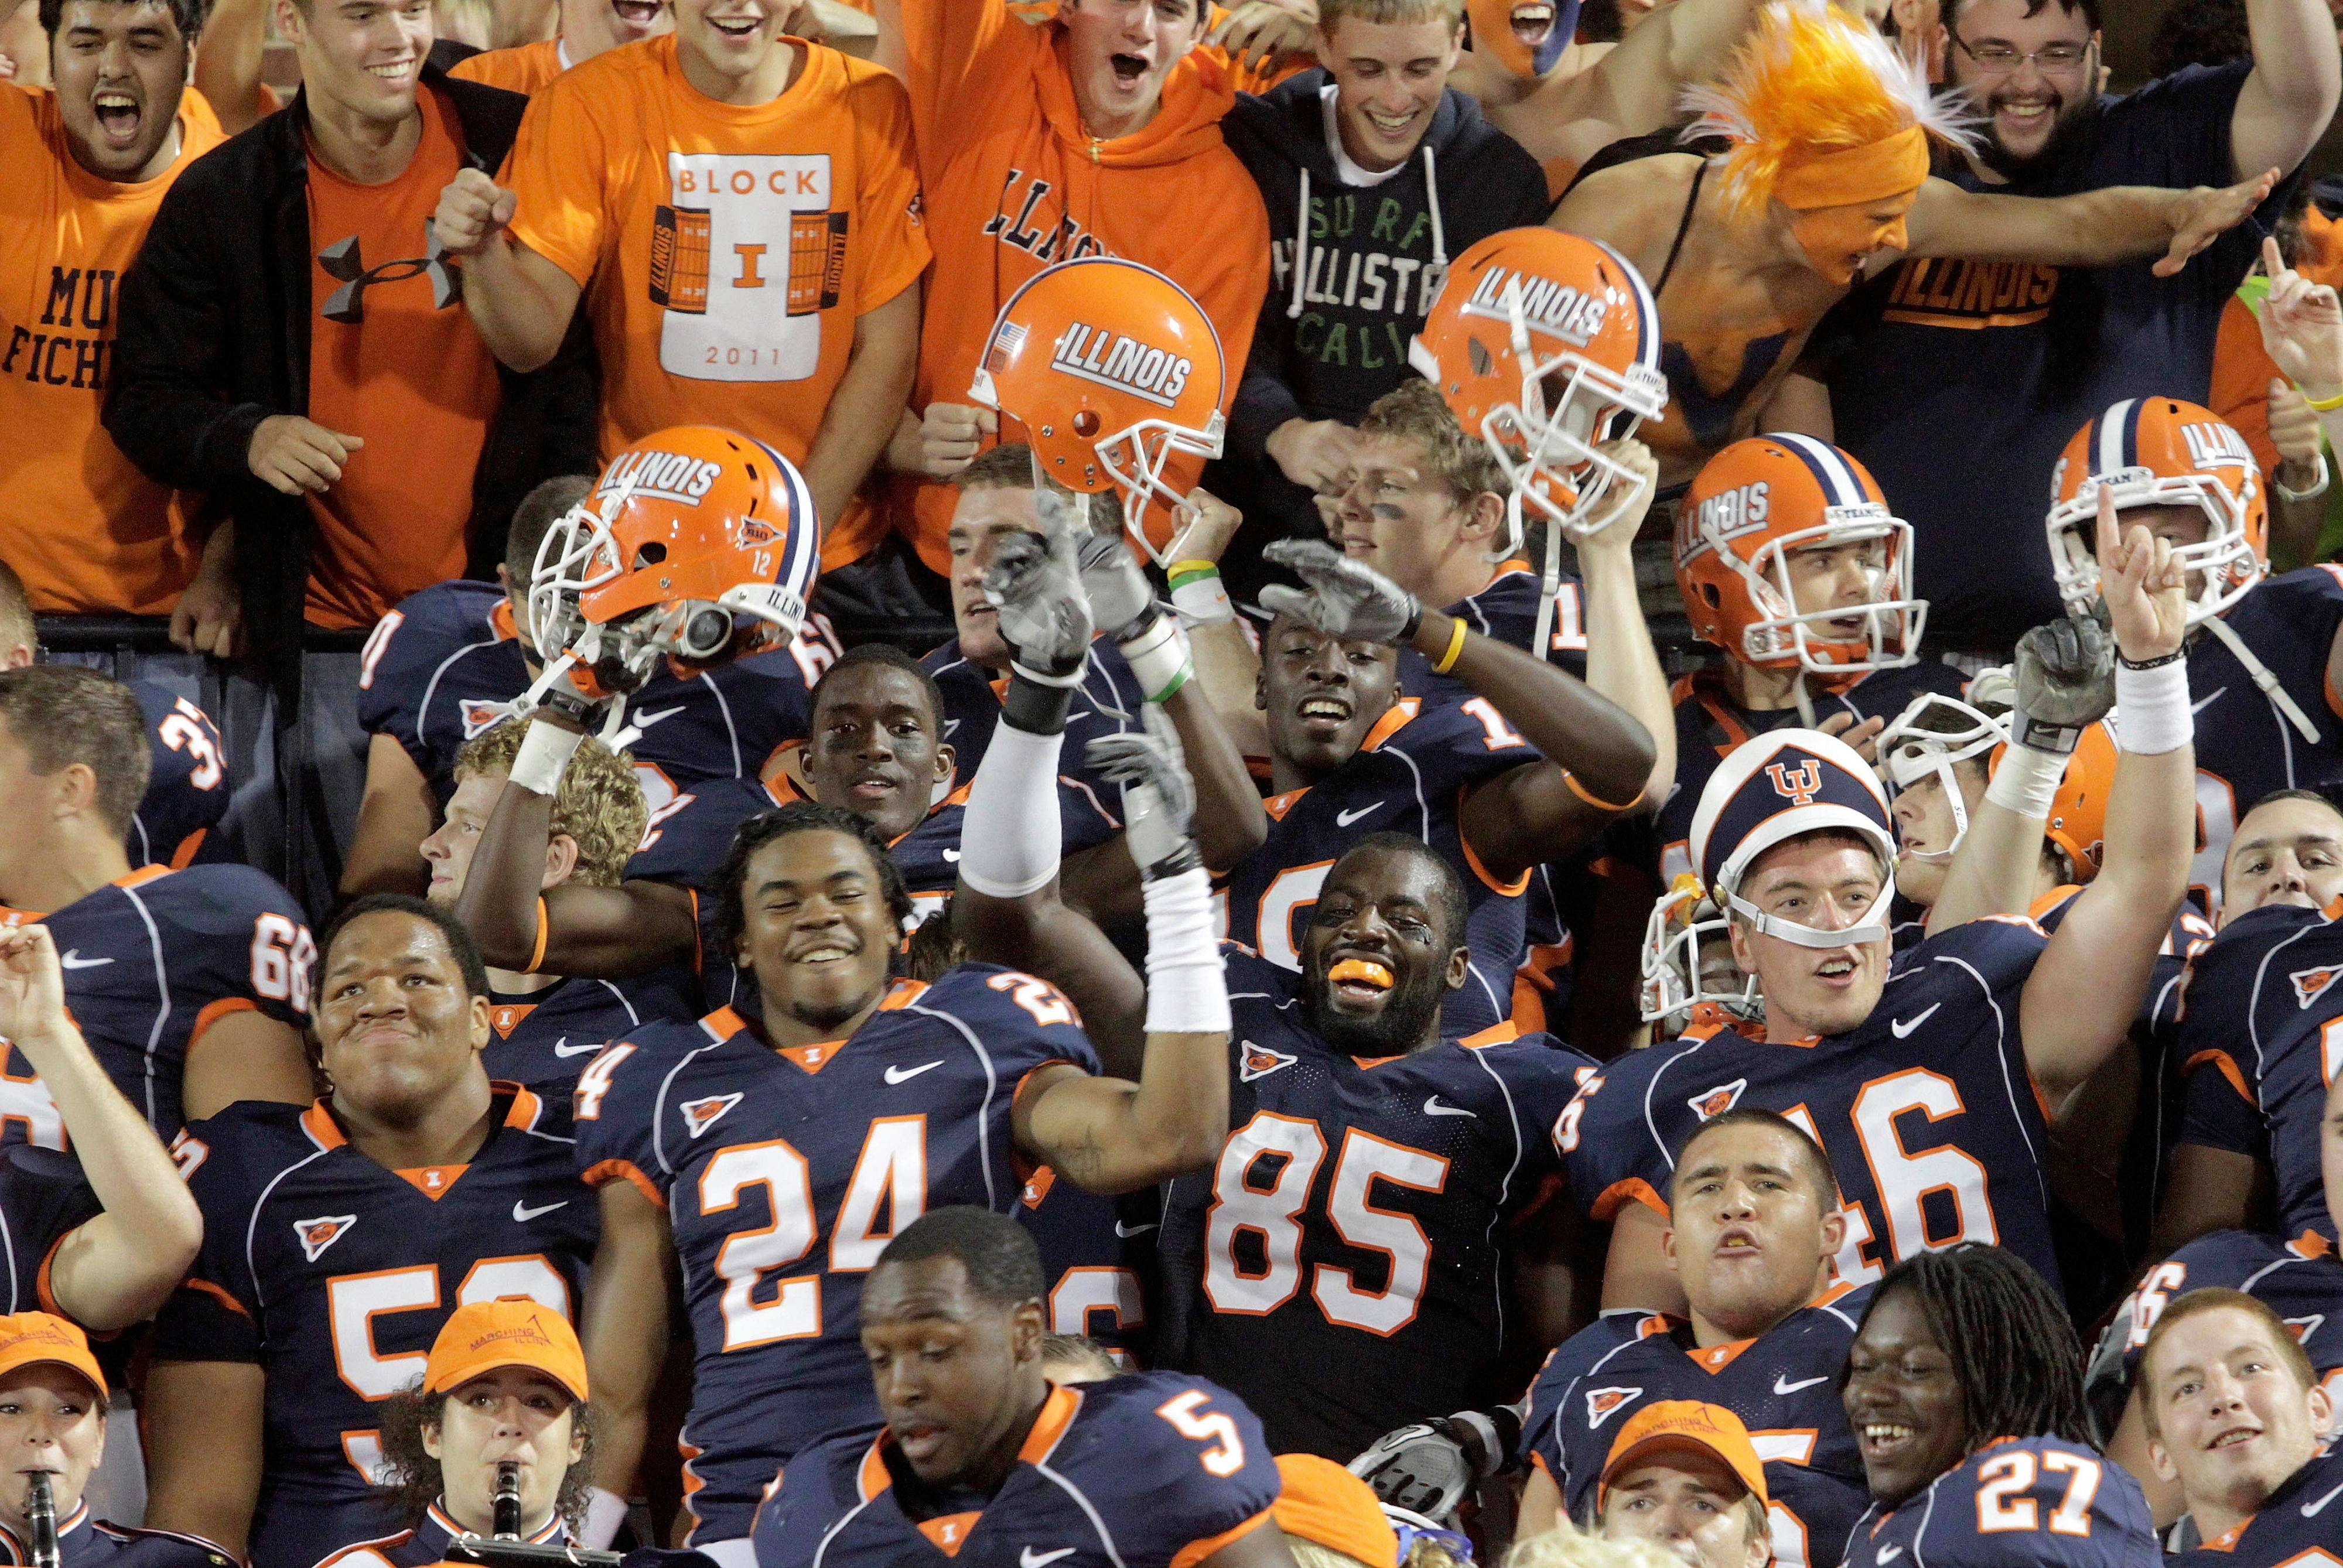 Illinois celebrates in the stand with fans after defeating Arizona State 17-14.